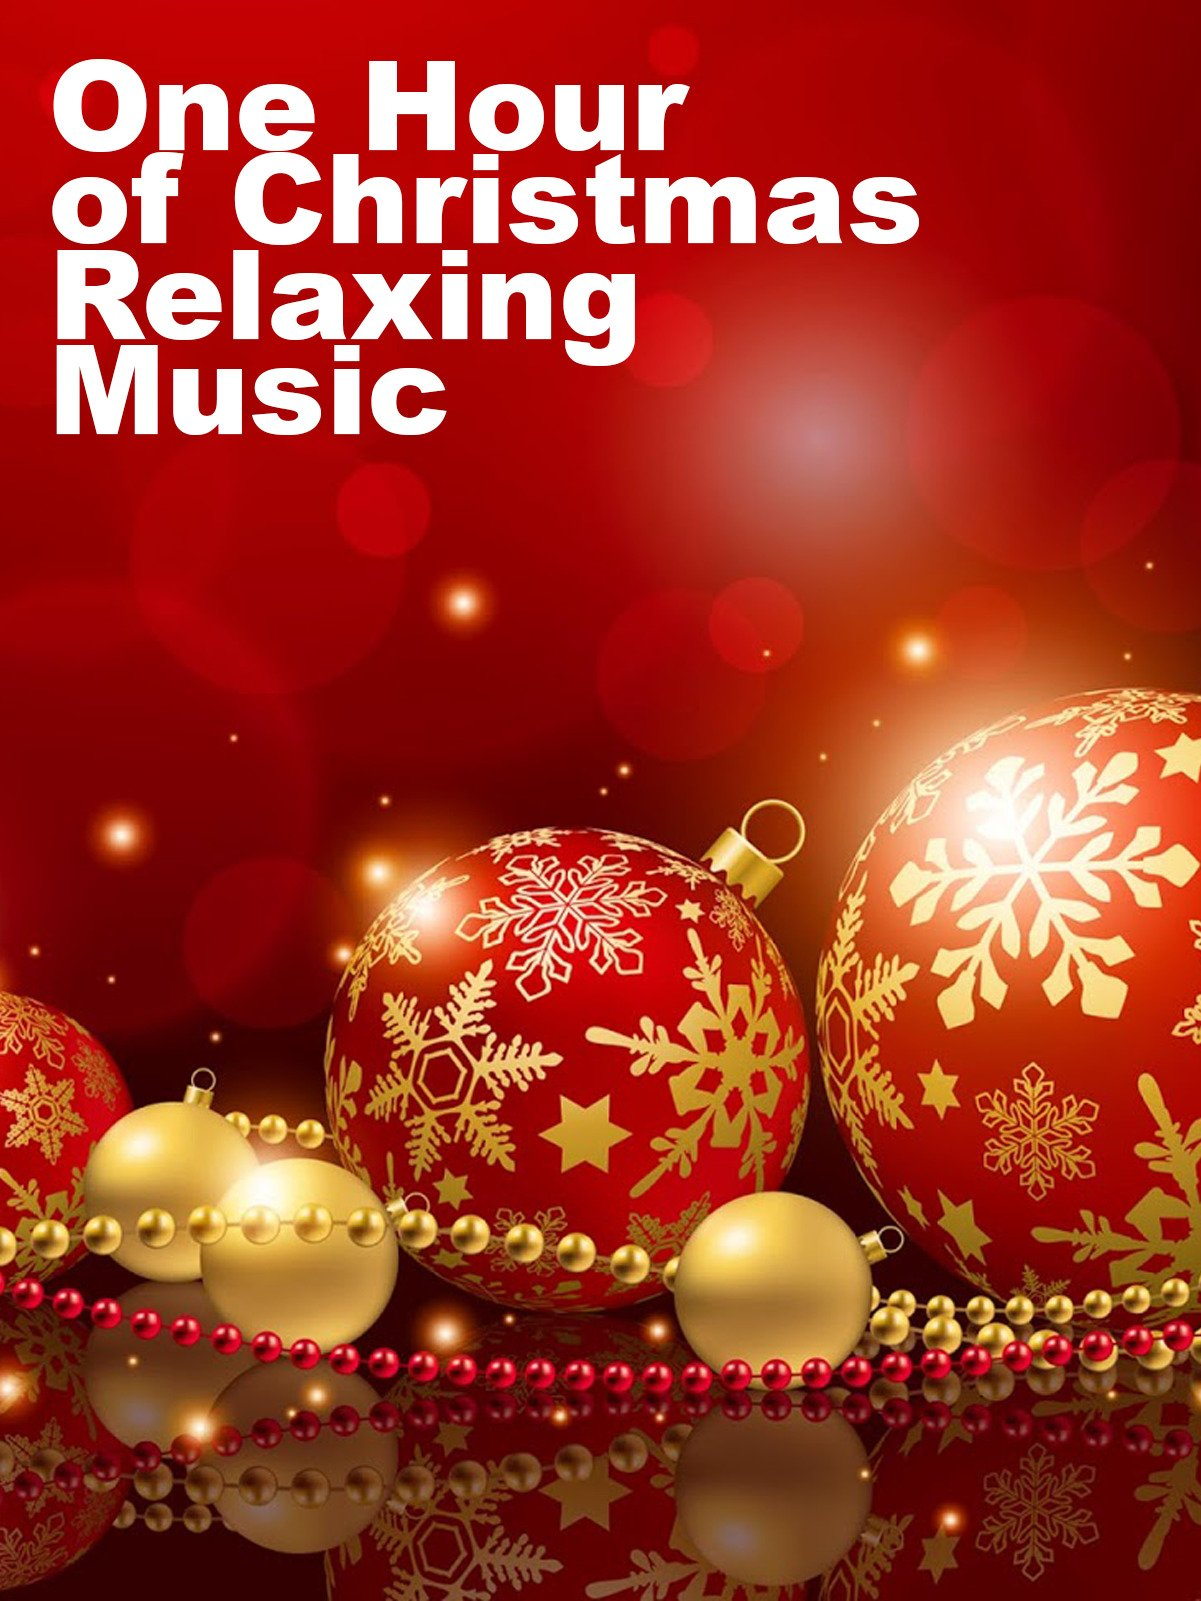 One Hour of Christmas Relaxing Music